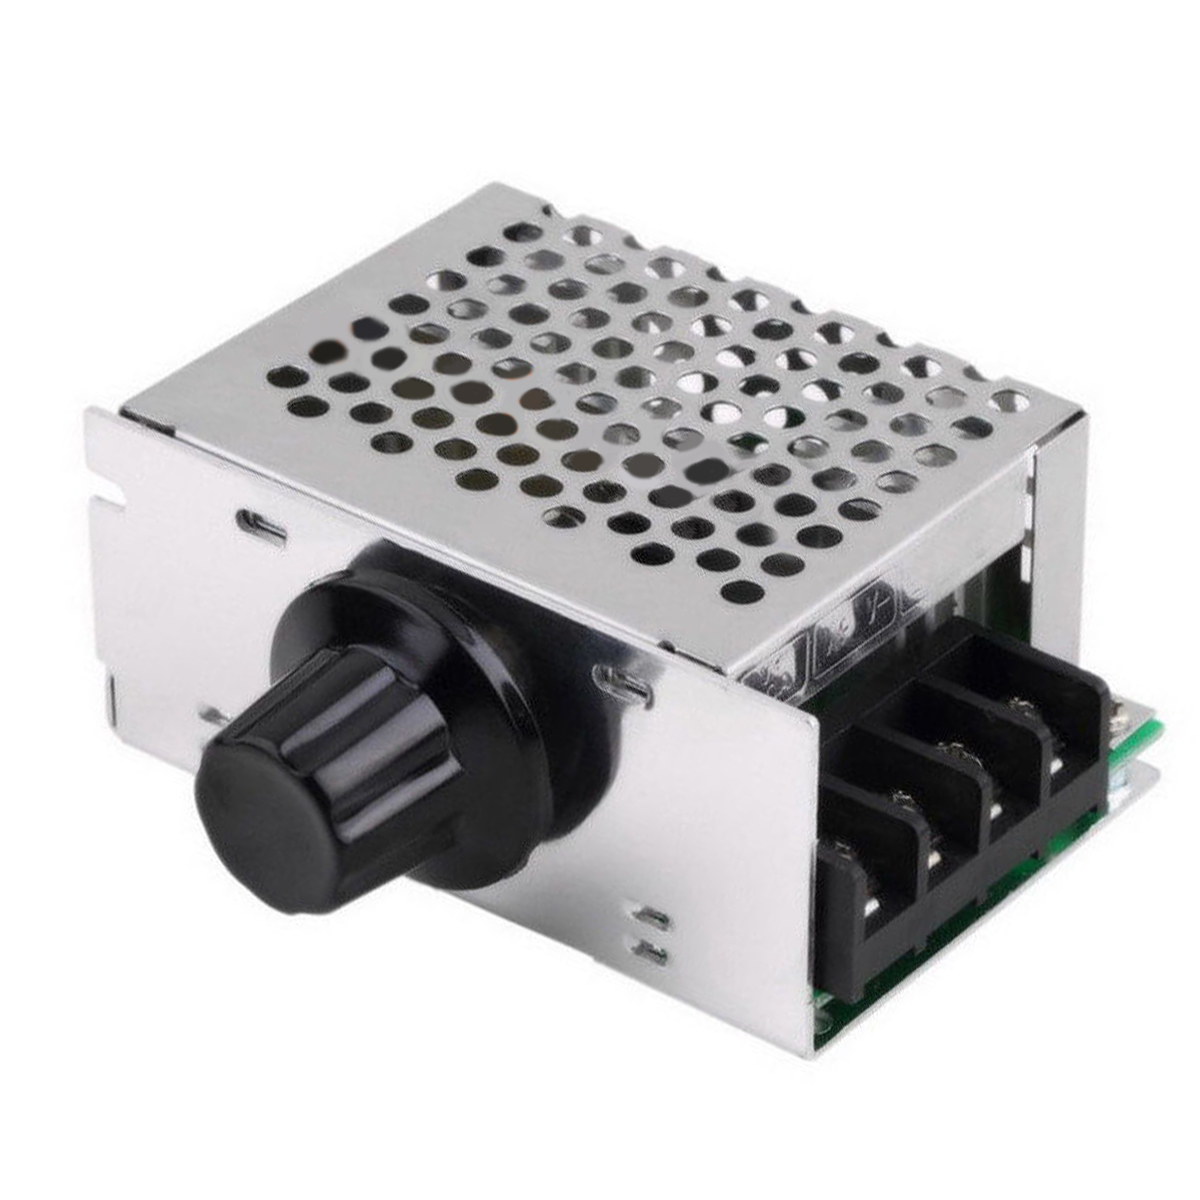 SCR Voltage Regulator Dimmer 4000W 220V AC Stable Motor Speed Temperature Controller Module for Electric Iron Lamps Mayitr